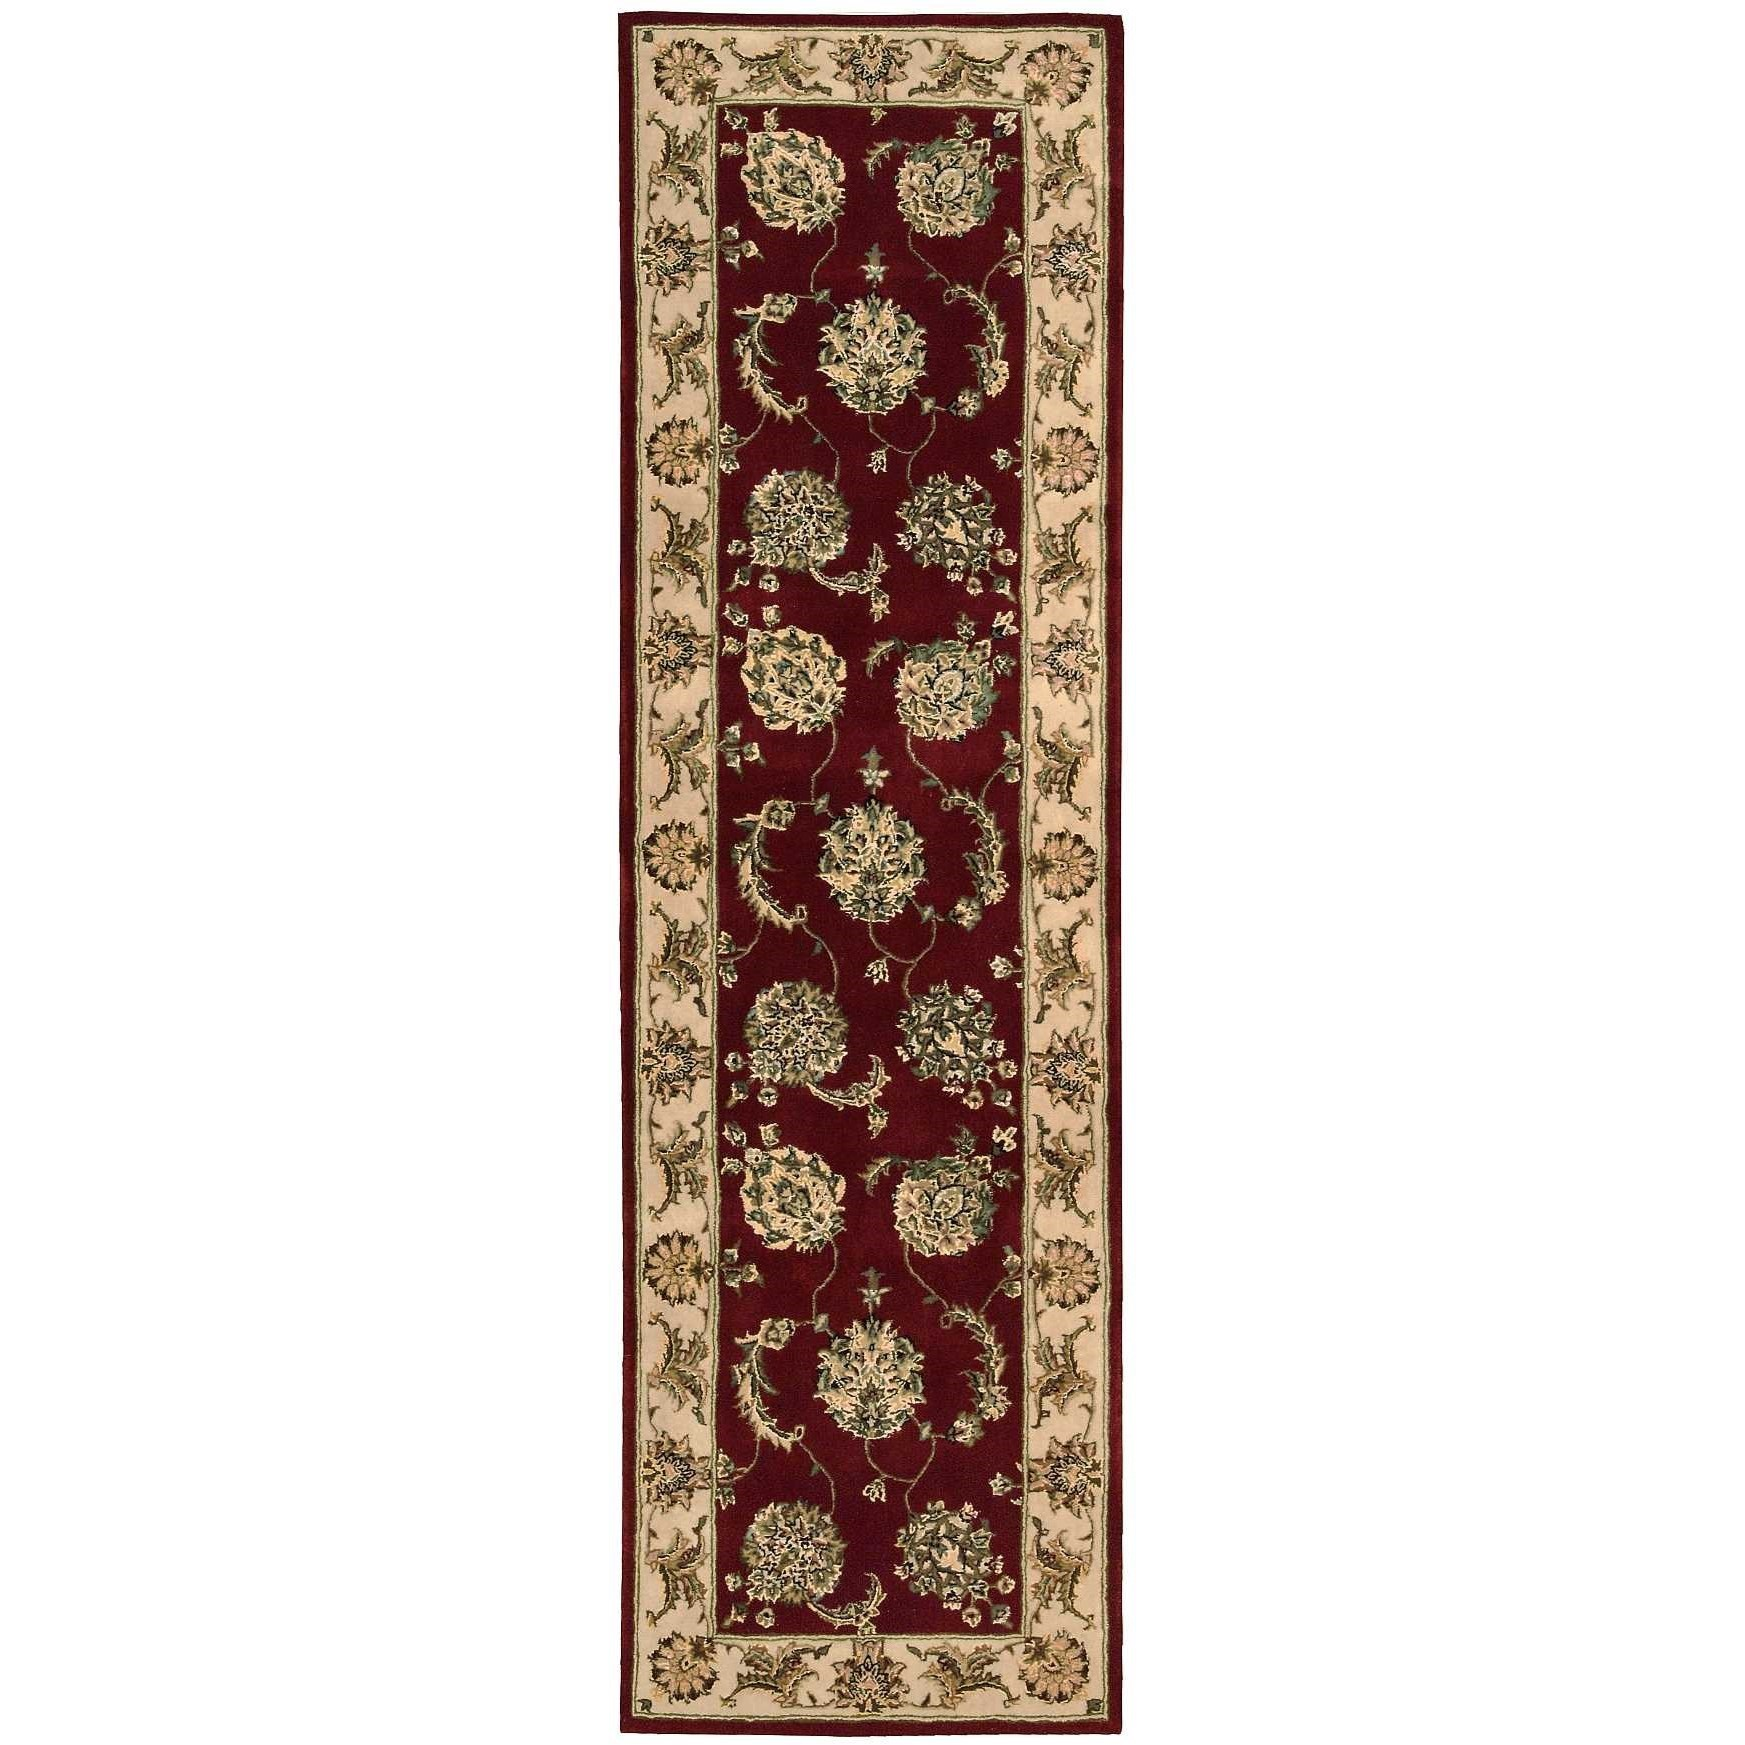 """Nourison 2000 2'3"""" x 8' Lacquer Runner Rug by Nourison at Home Collections Furniture"""